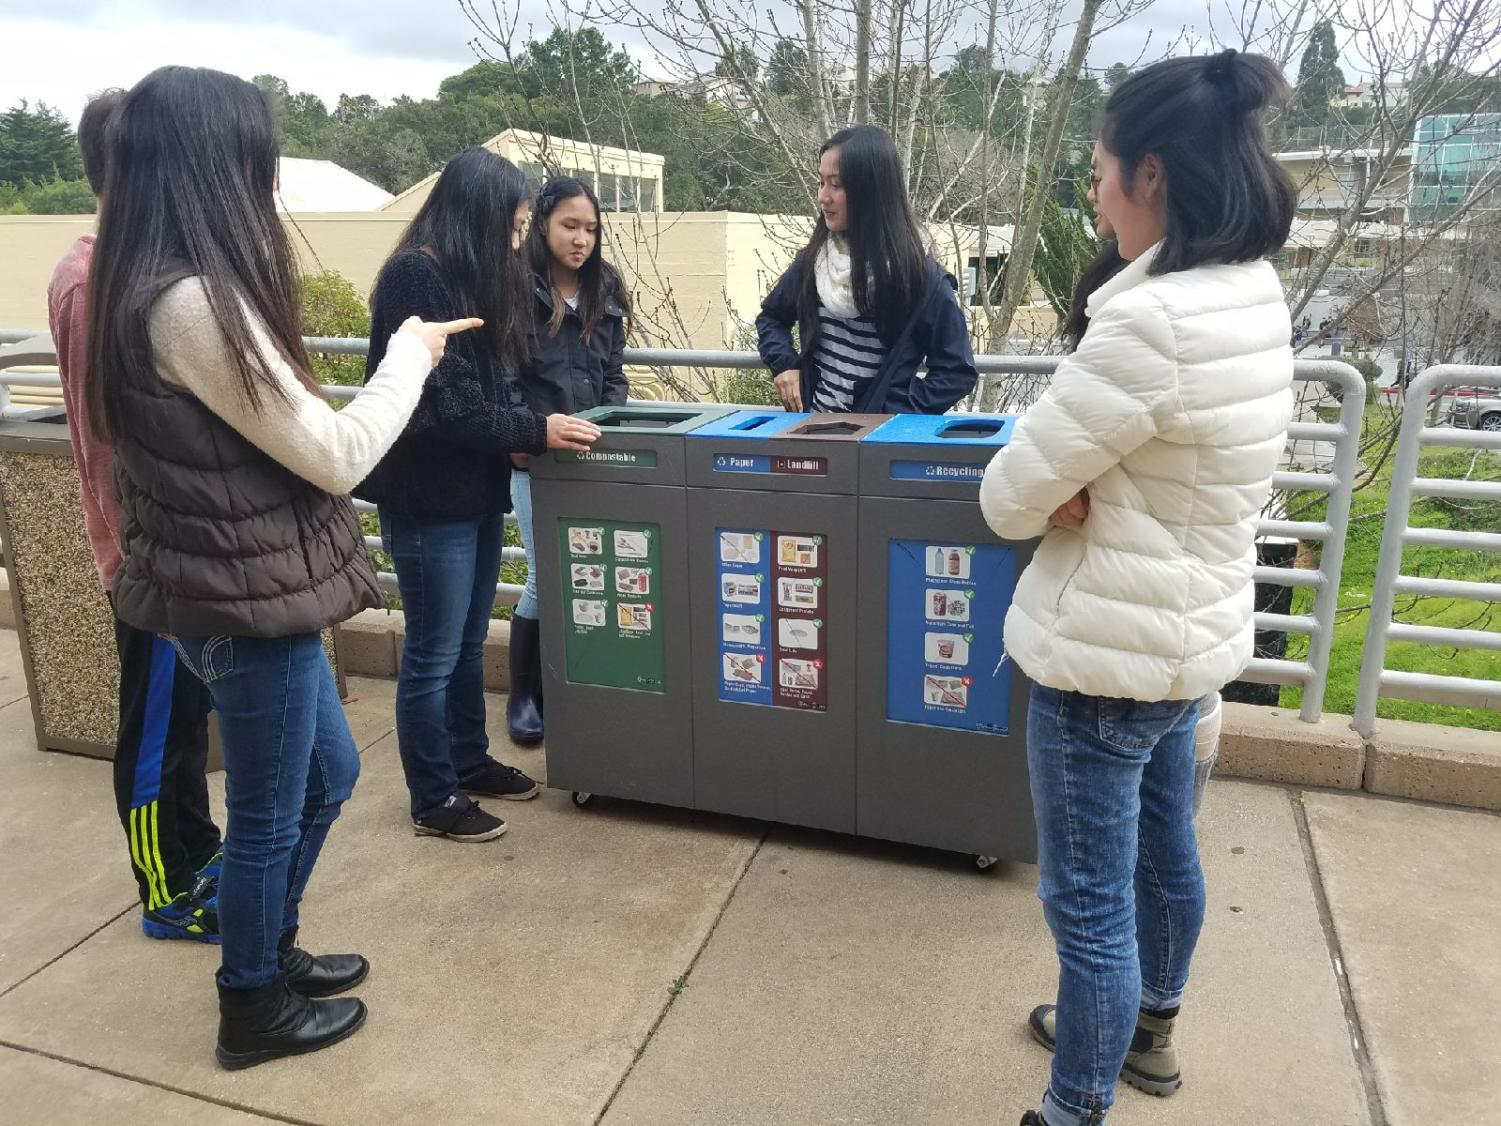 The Green Team stands outside during one of their meetings and discusses the tri-bin system.